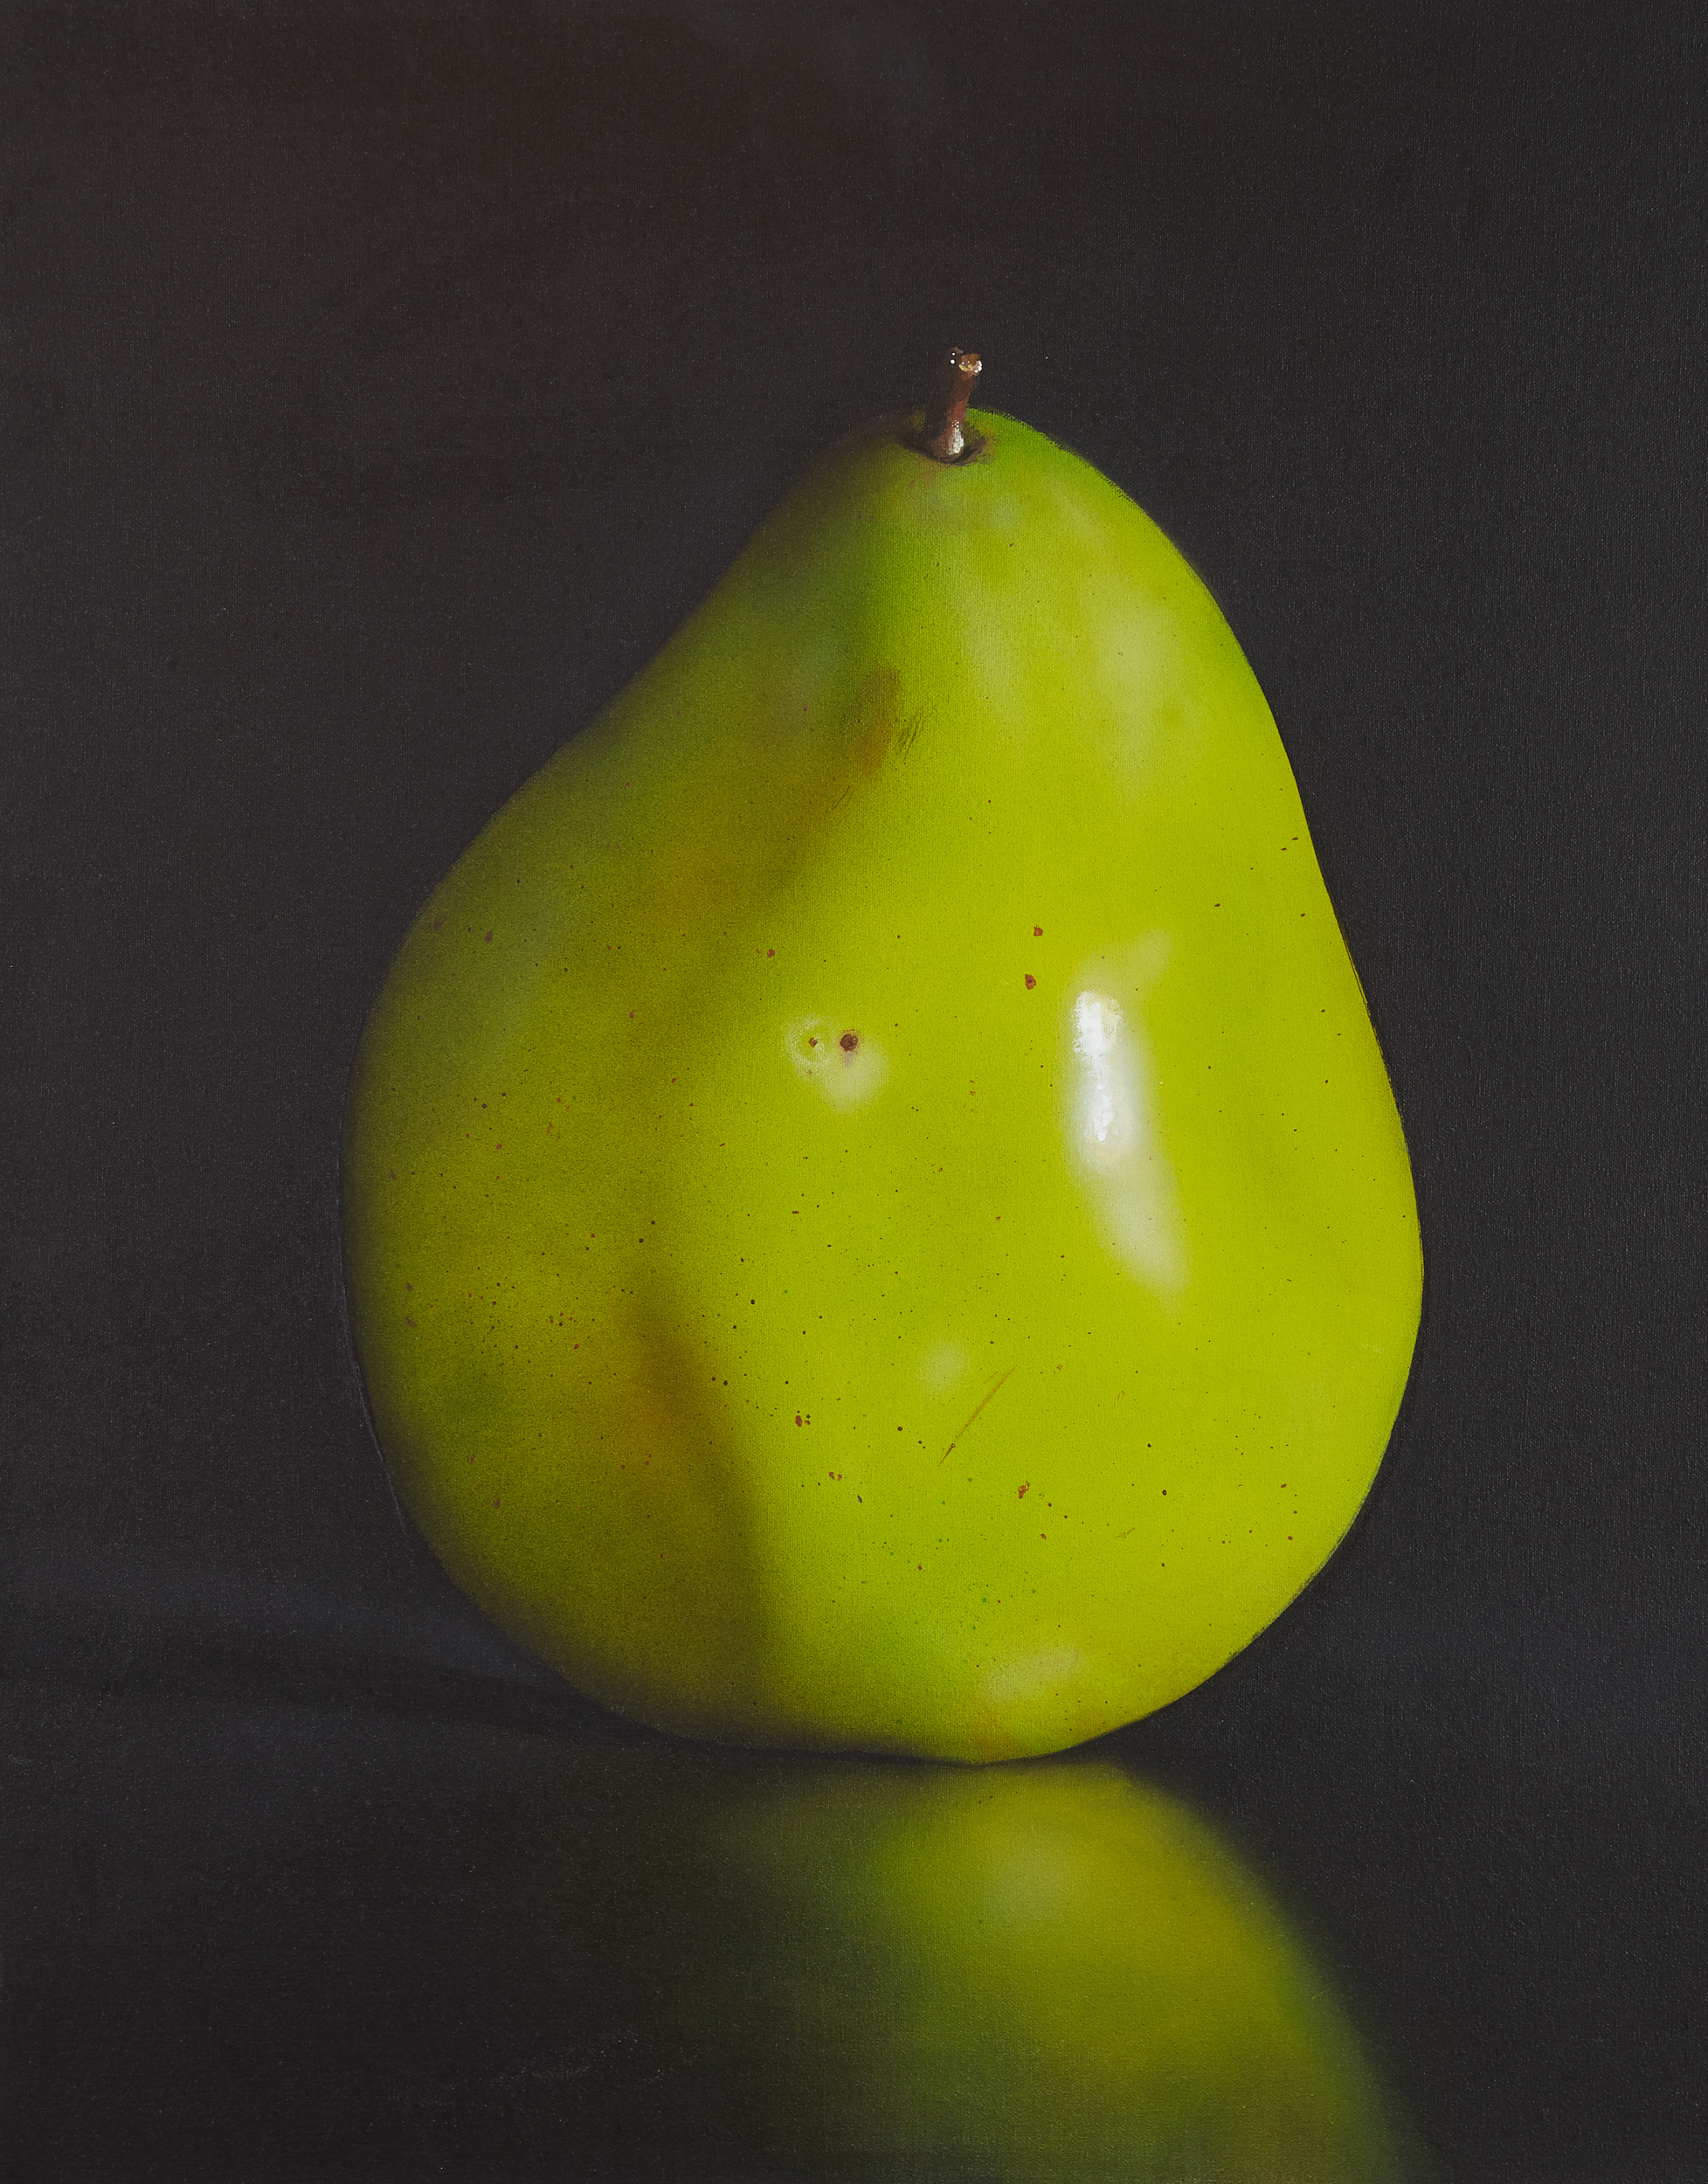 Lot 29 - Tom Seghi Green Pear Painting